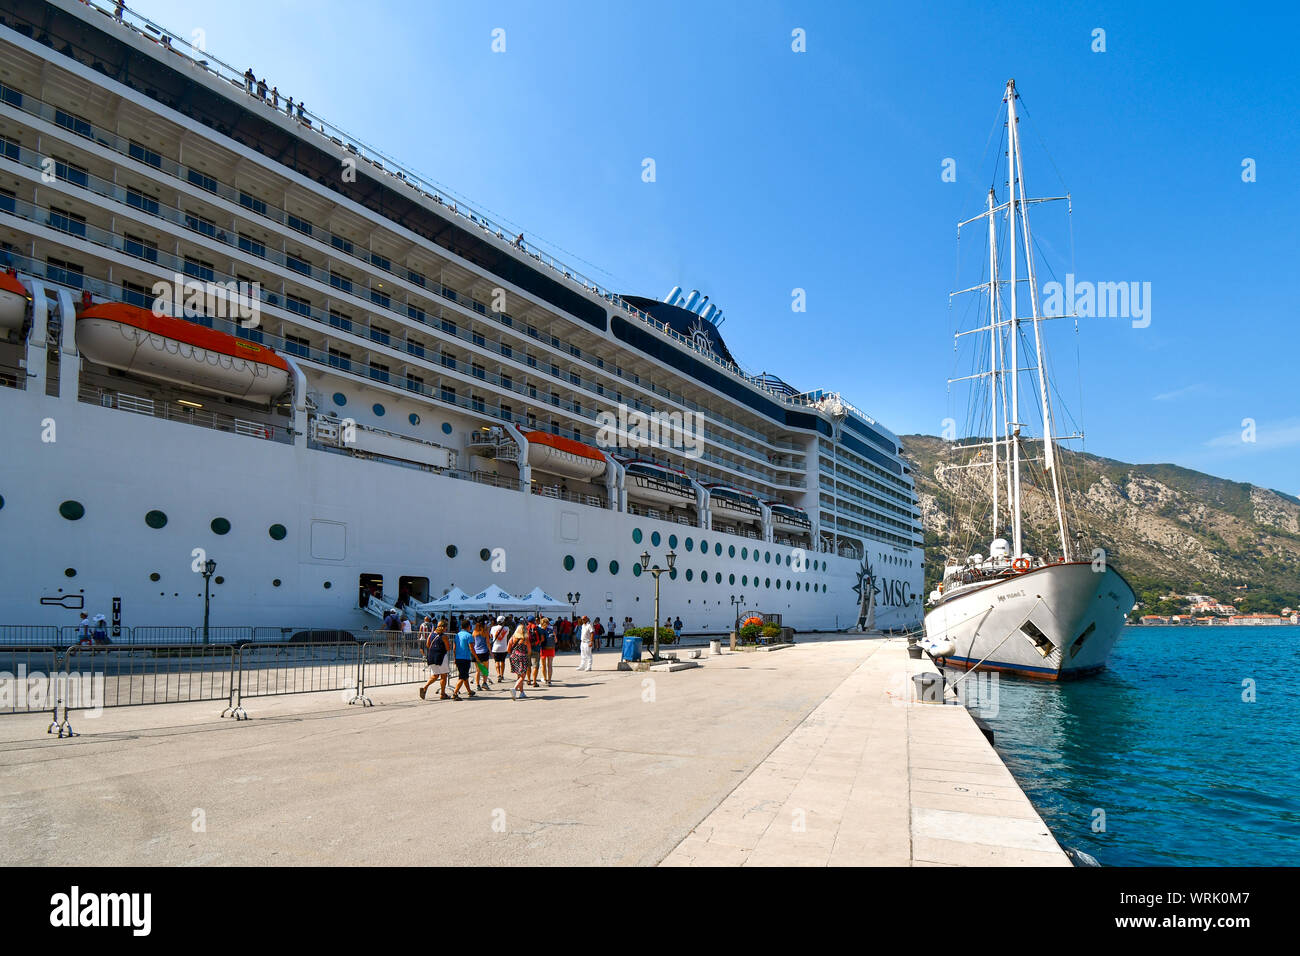 Tourists arrive back at a massive cruise ship in the cruise port of the ancient city of Kotor, Montenegro. Stock Photo